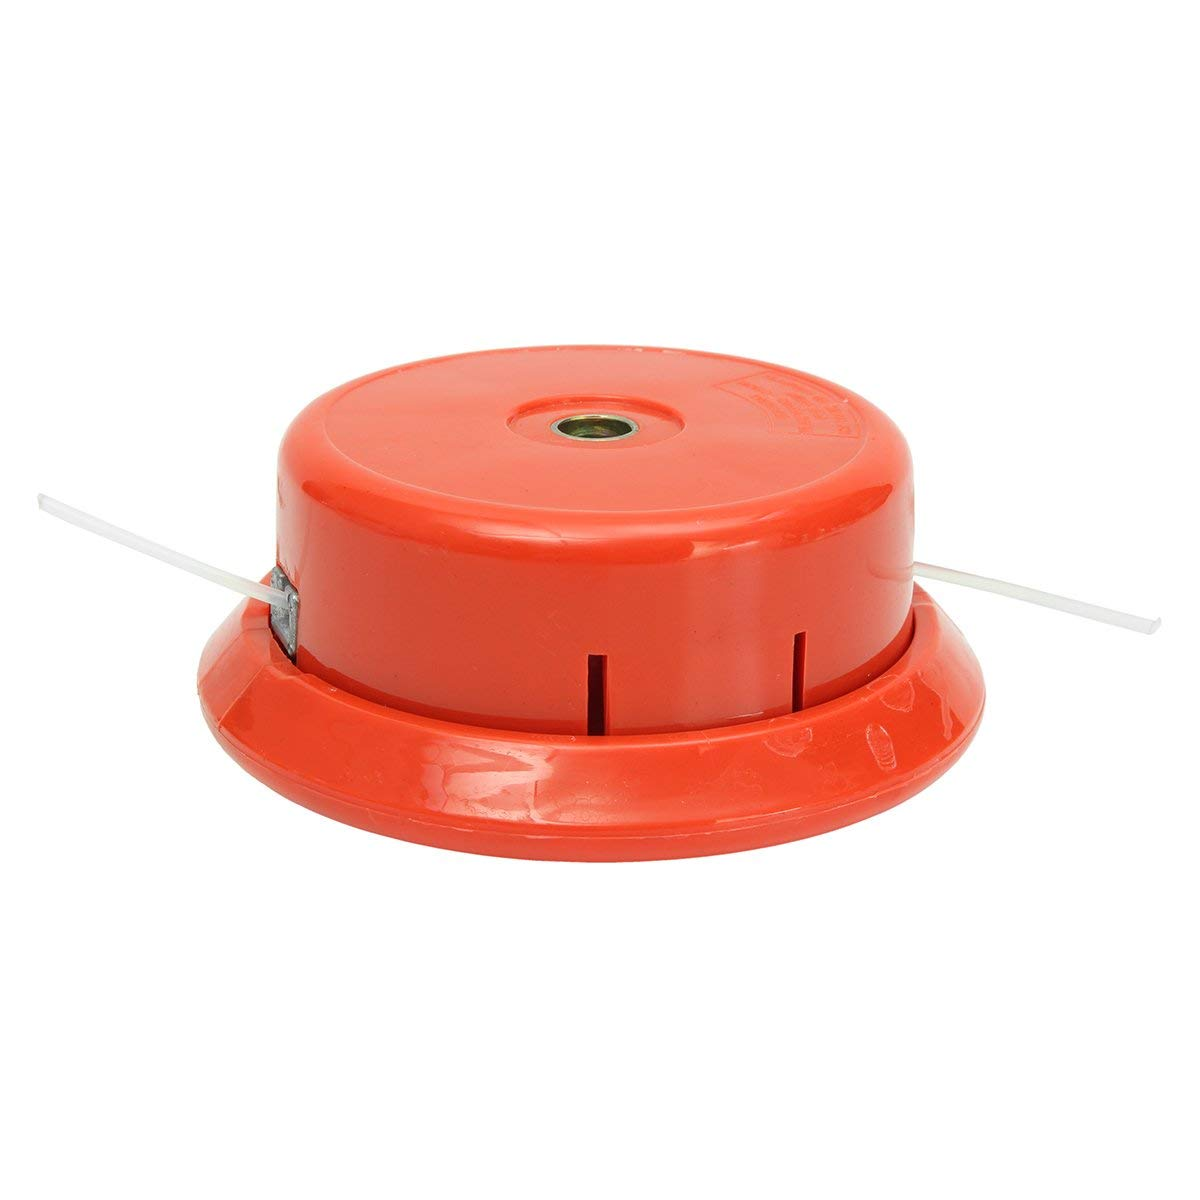 Cheap Grass Trimmer Replacement Head, find Grass Trimmer Replacement